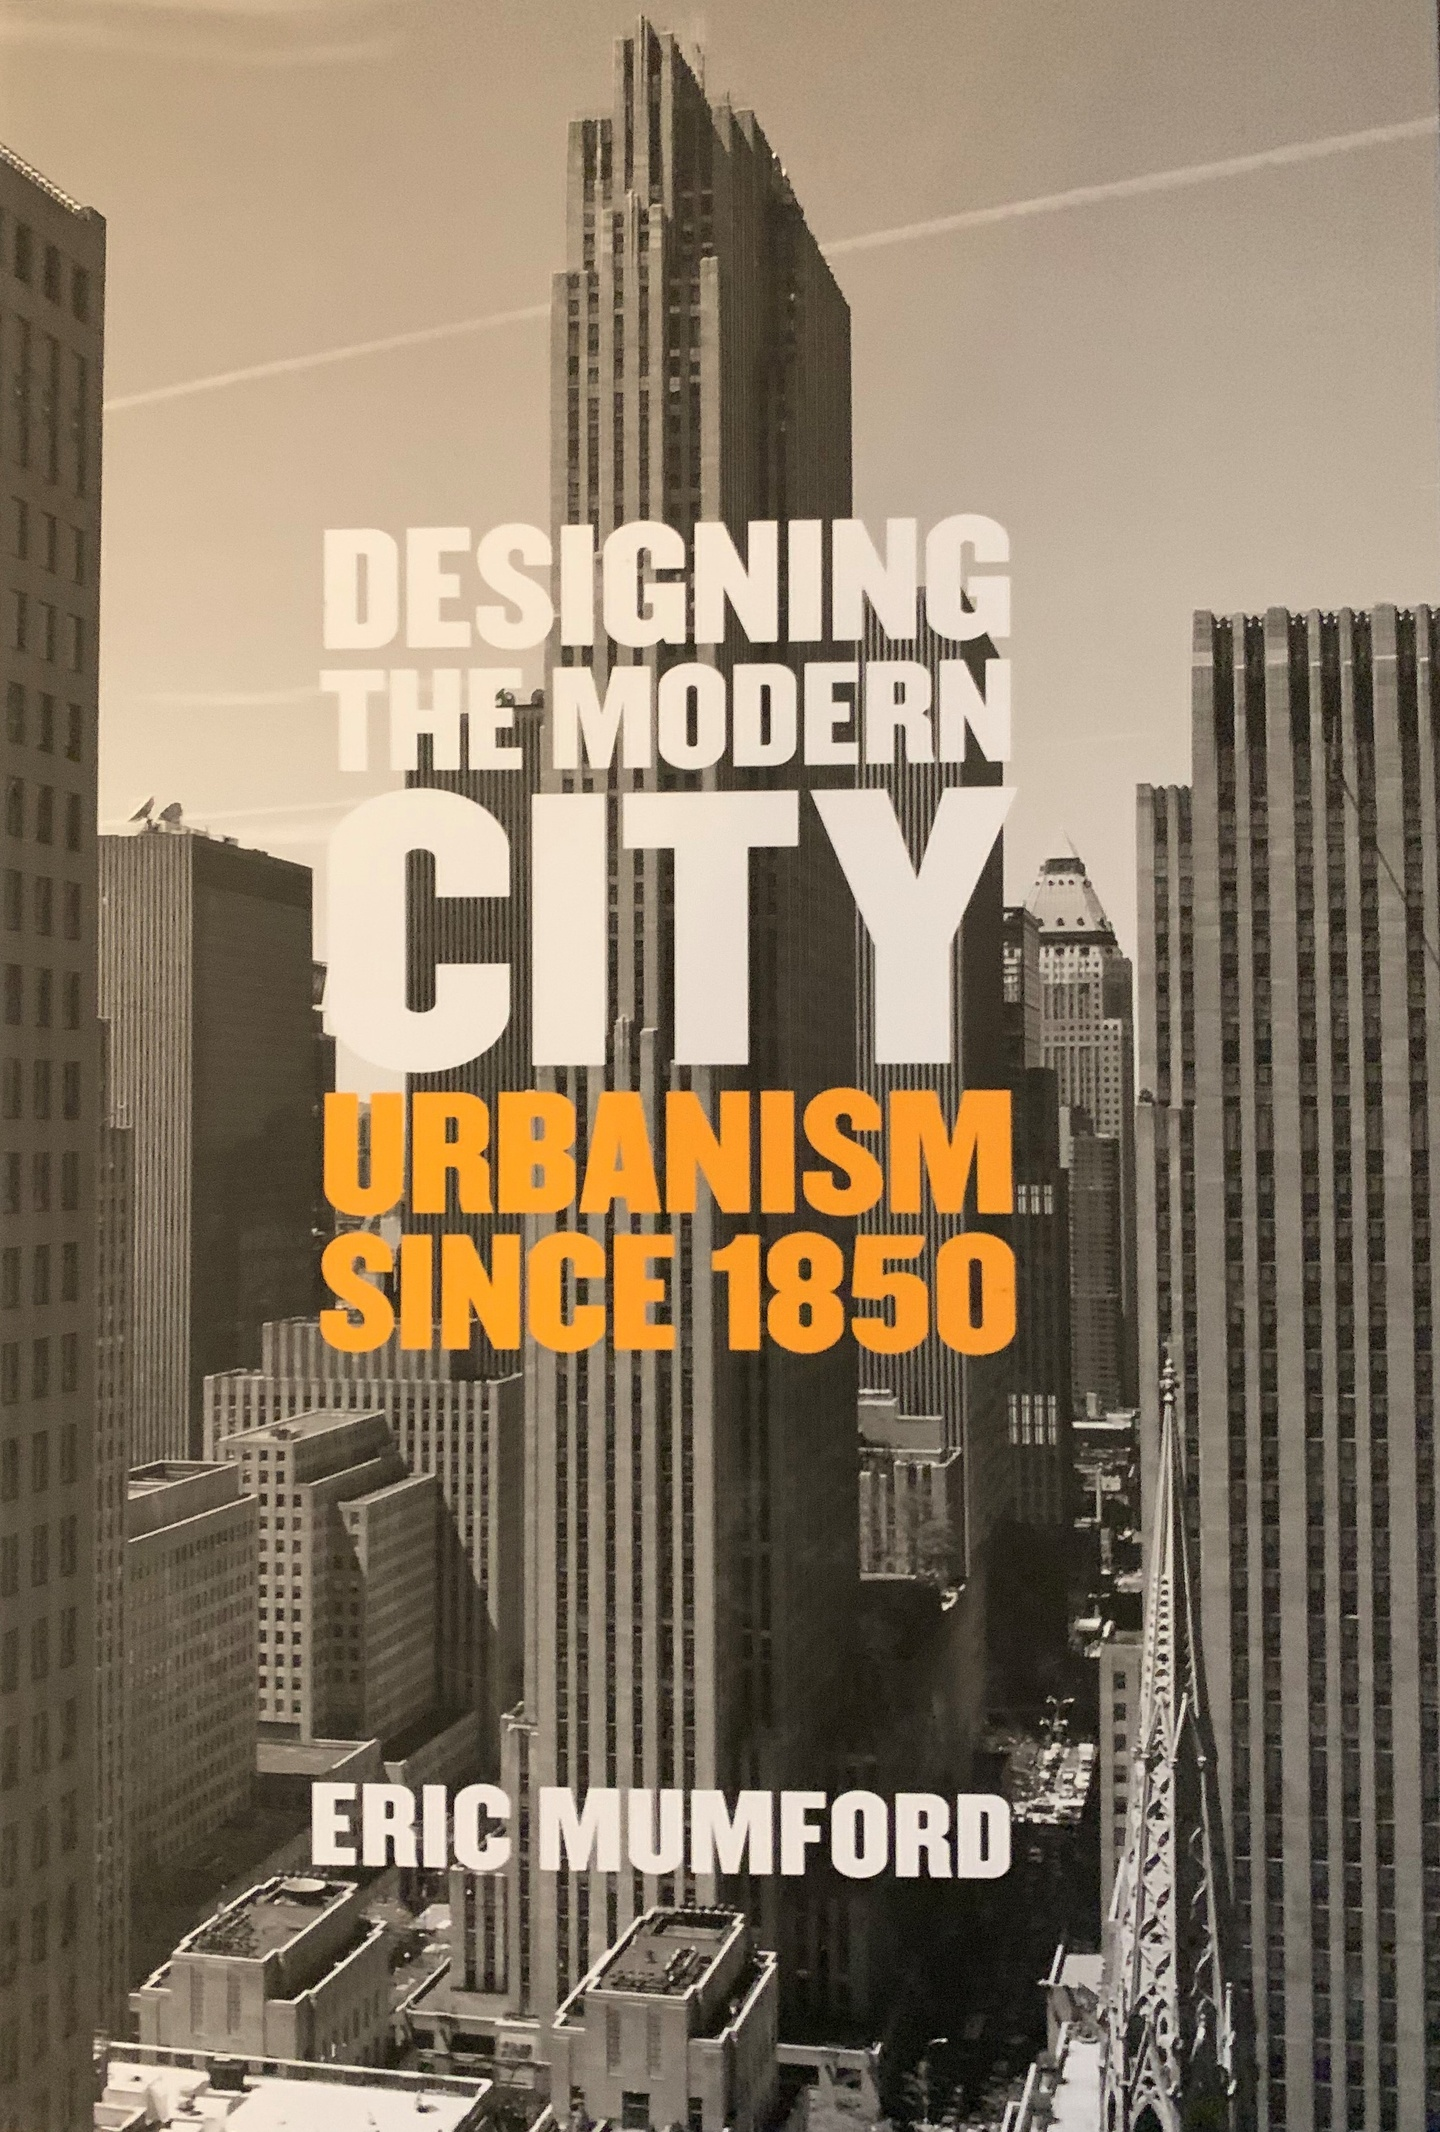 Cover of Designing the Modern City: Urbanism Since 1850, with a black-and-white photo of a cityscape with white and orange type over the top.